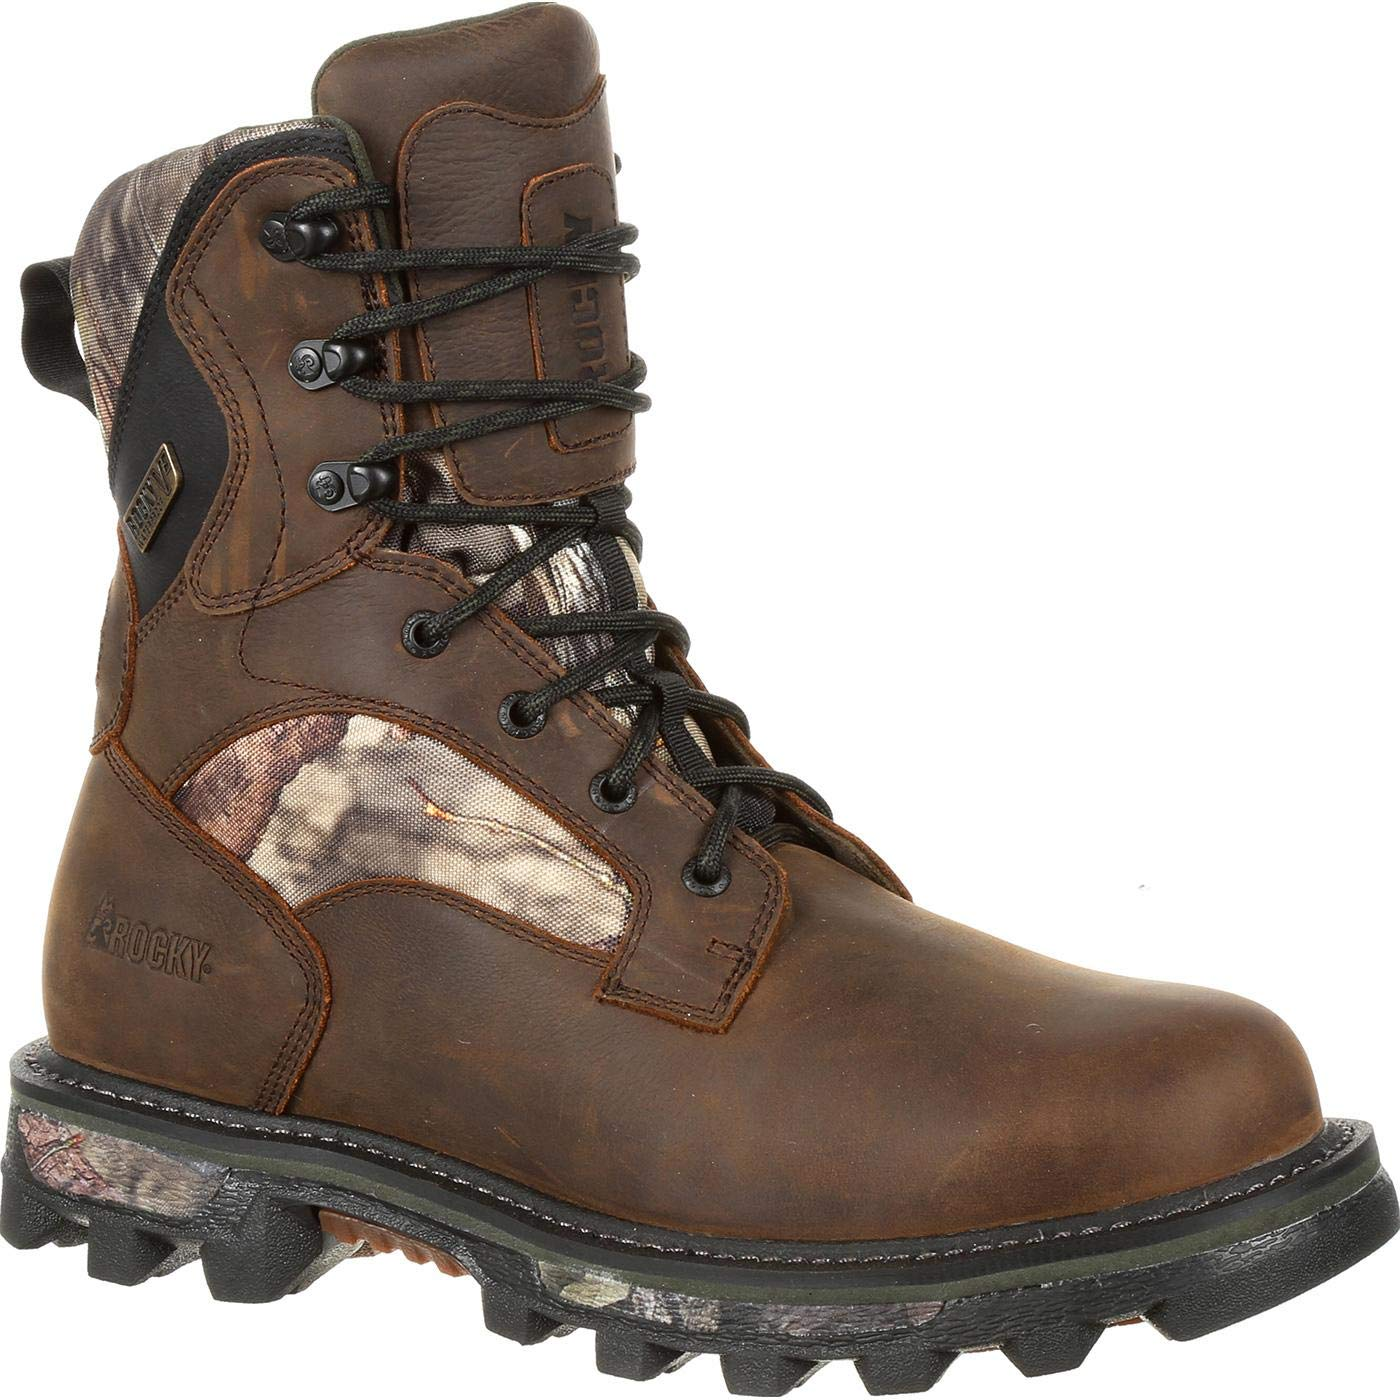 Rocky Men's 8'' Bearclaw FX 800g Insulated Waterproof Outdoor Boots, Brown, 8 W